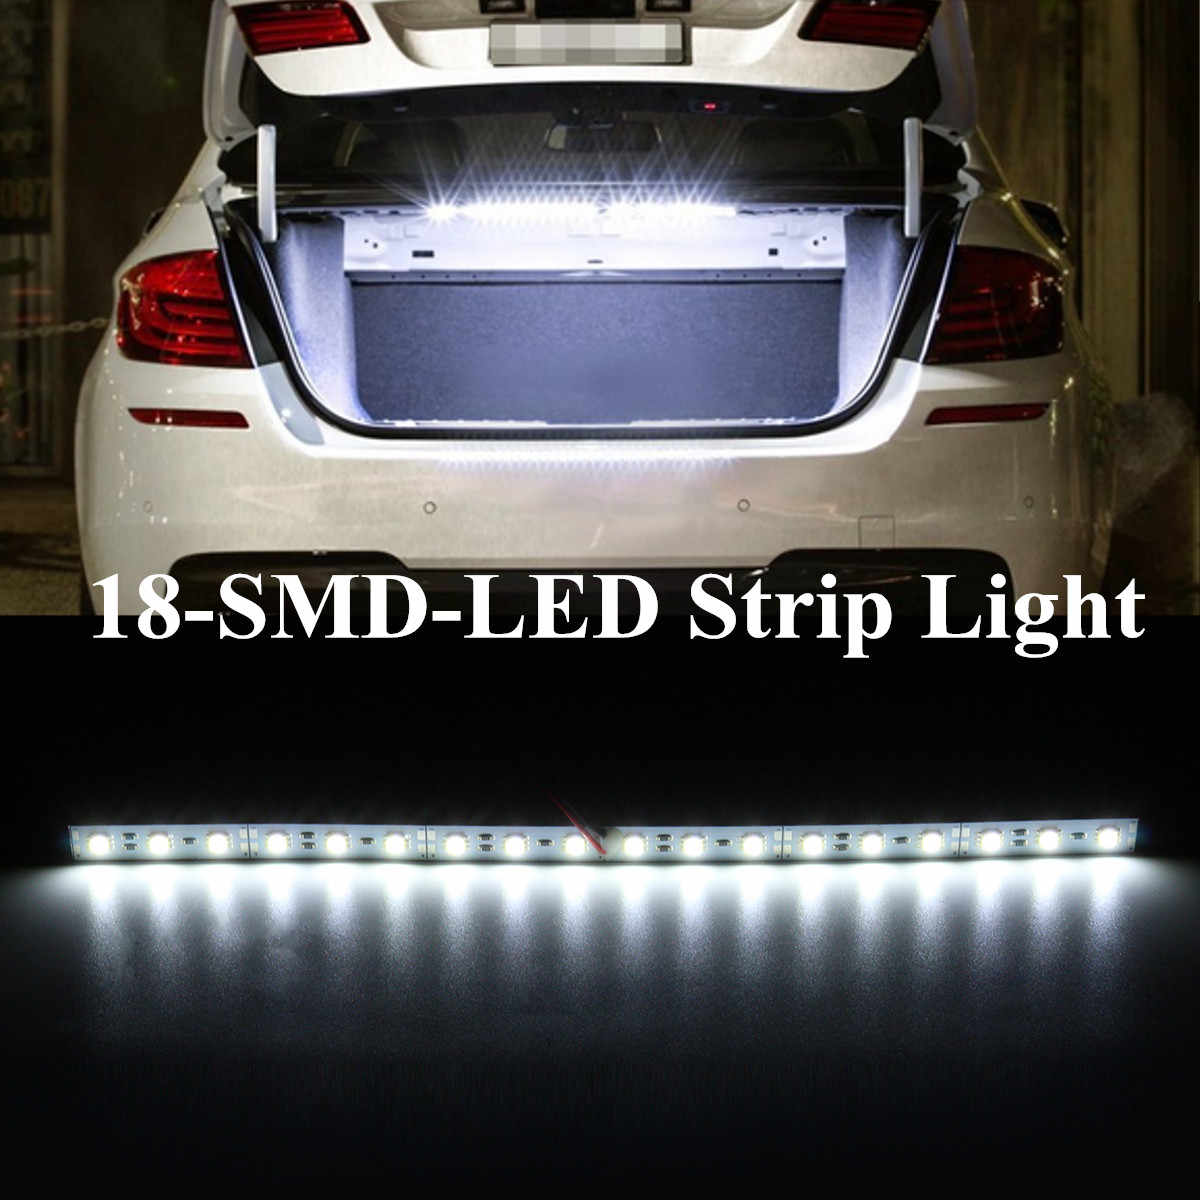 1 Pcs 30 cm Wit 18 LED Light Bar SMD Auto LED Strip Licht Voor Auto Trunk Cargo Gebied Interieur verlichting